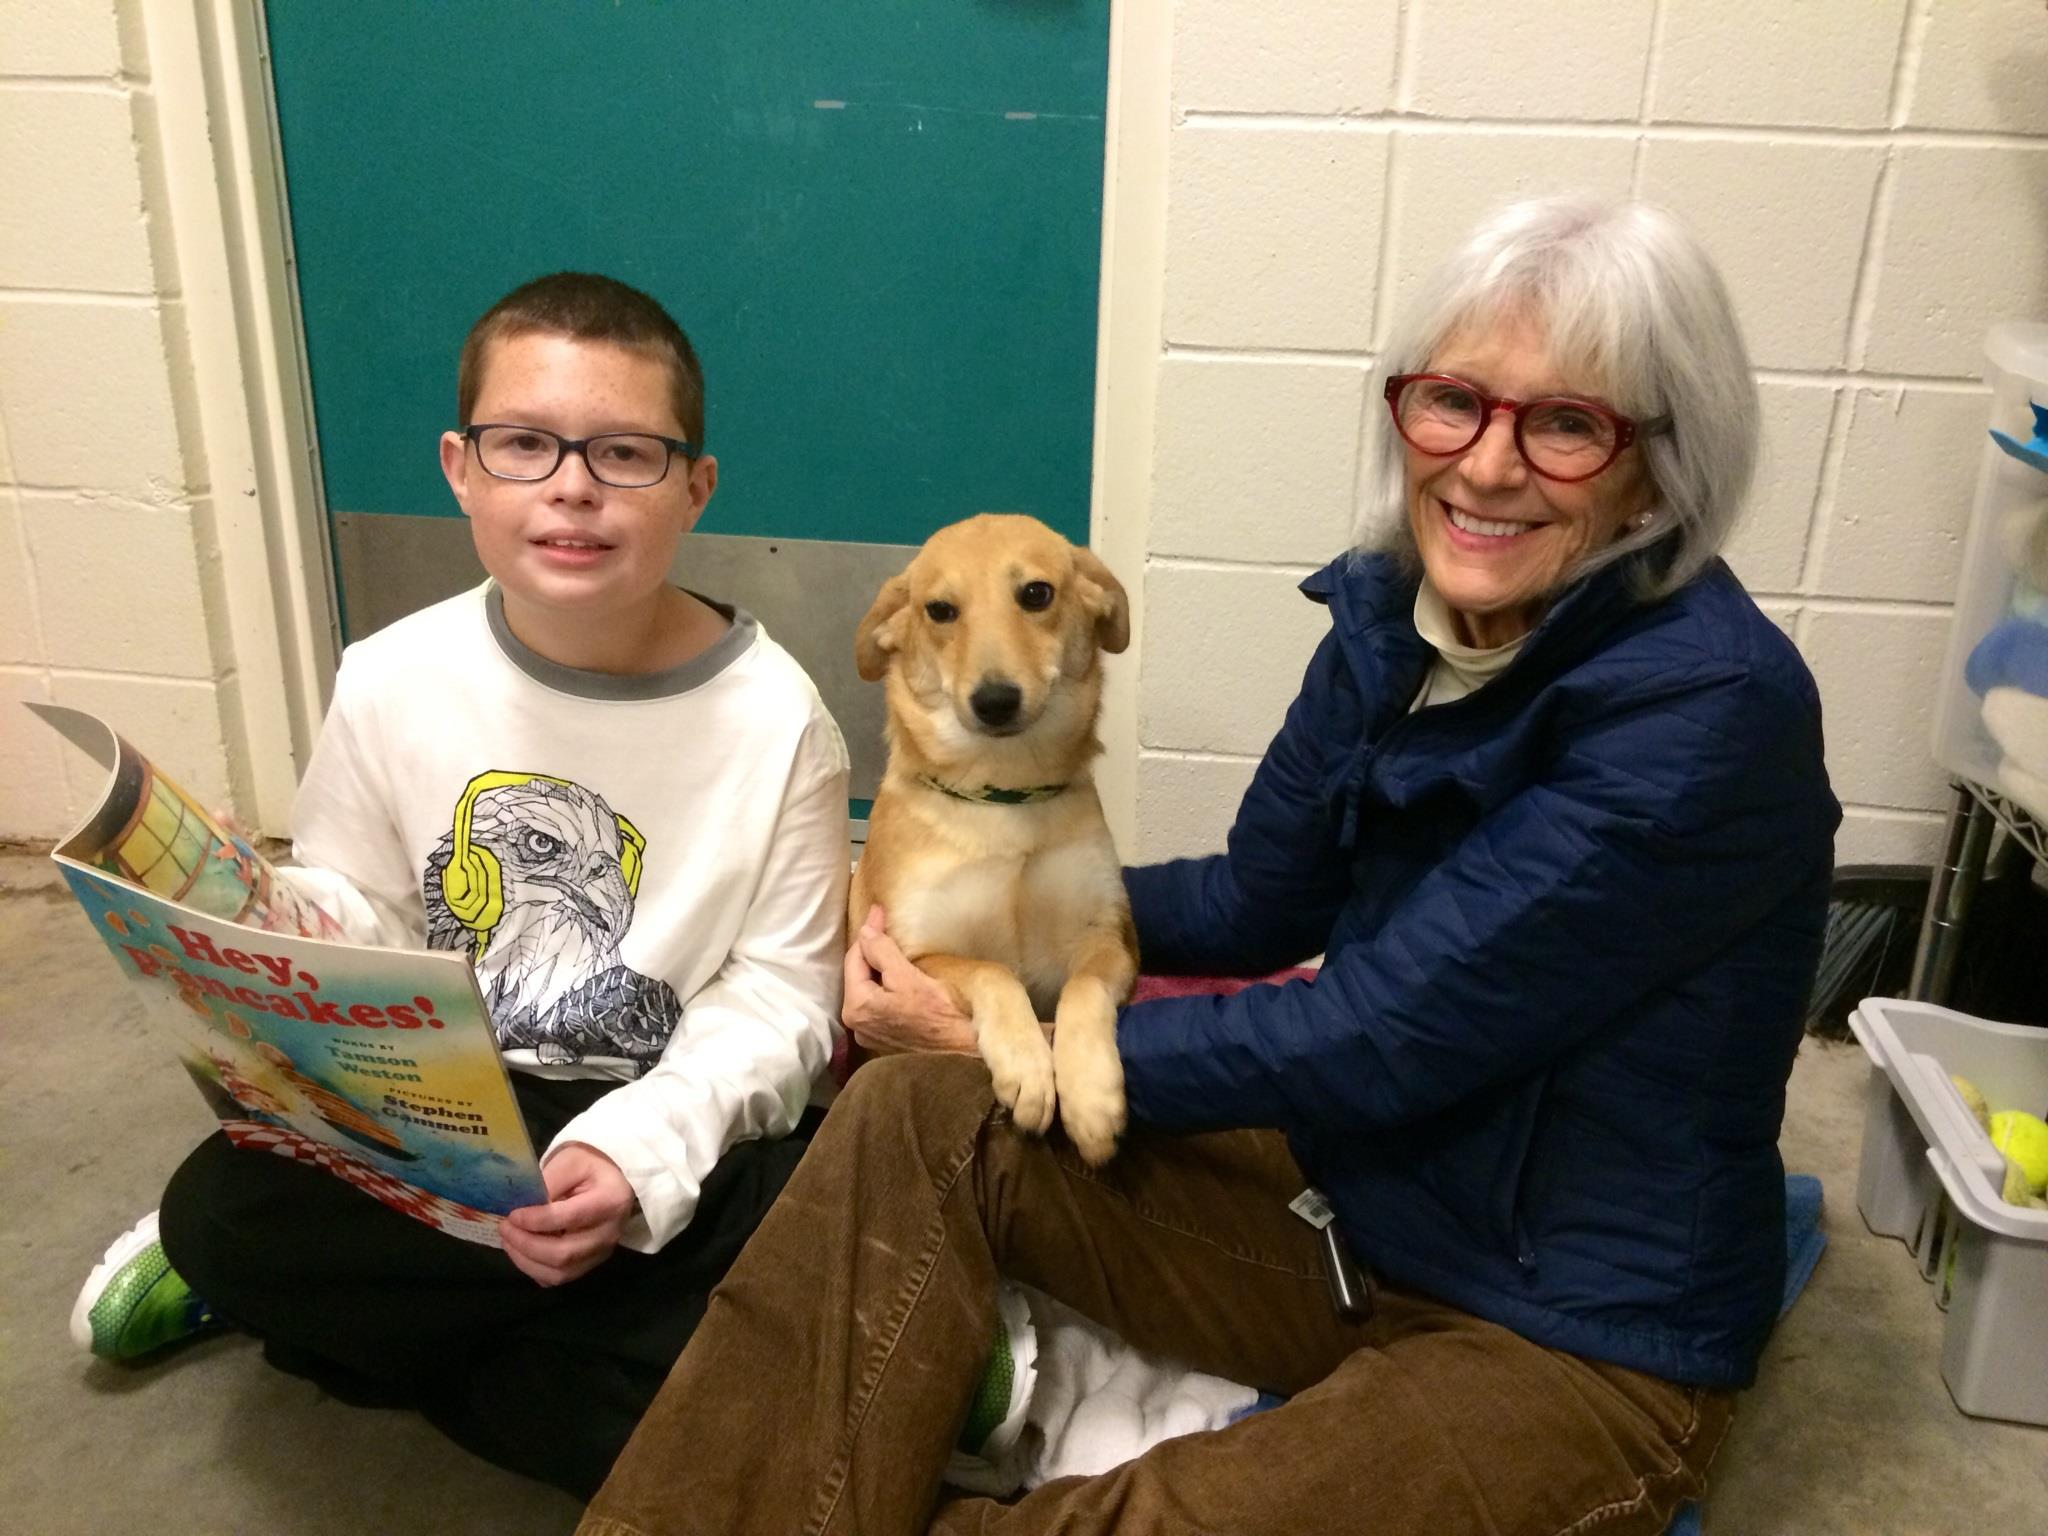 Hope (since adopted) enjoyed a reading session (at the Dog Ears Reading Program) with a young participant and FOTAS volunteer Karen.